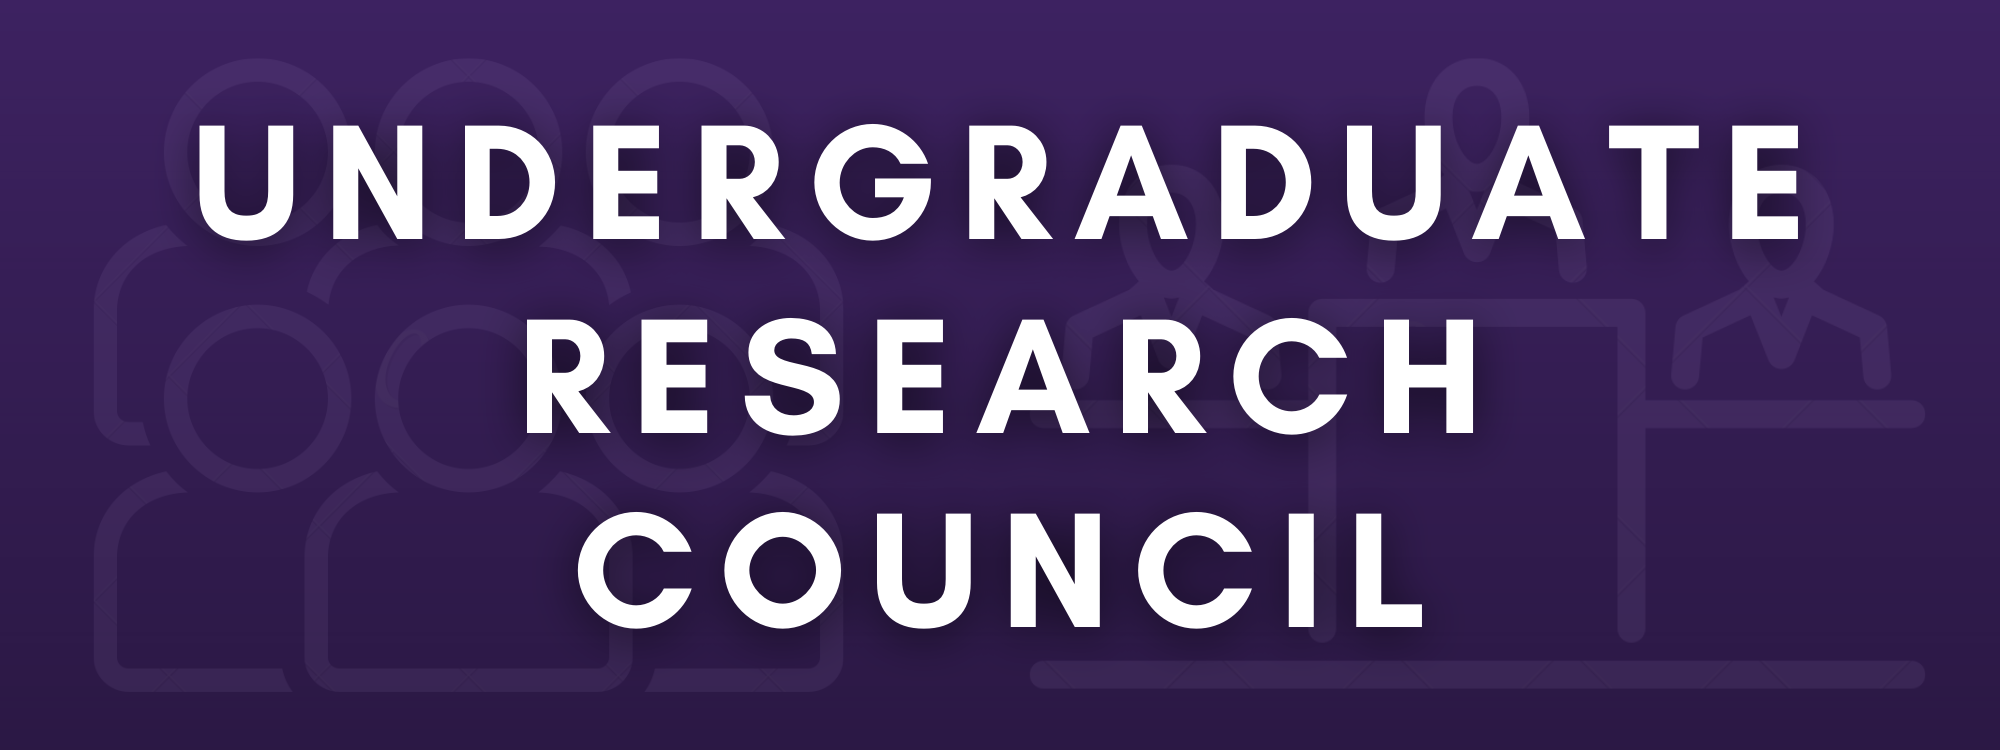 Undergraduate Research Council